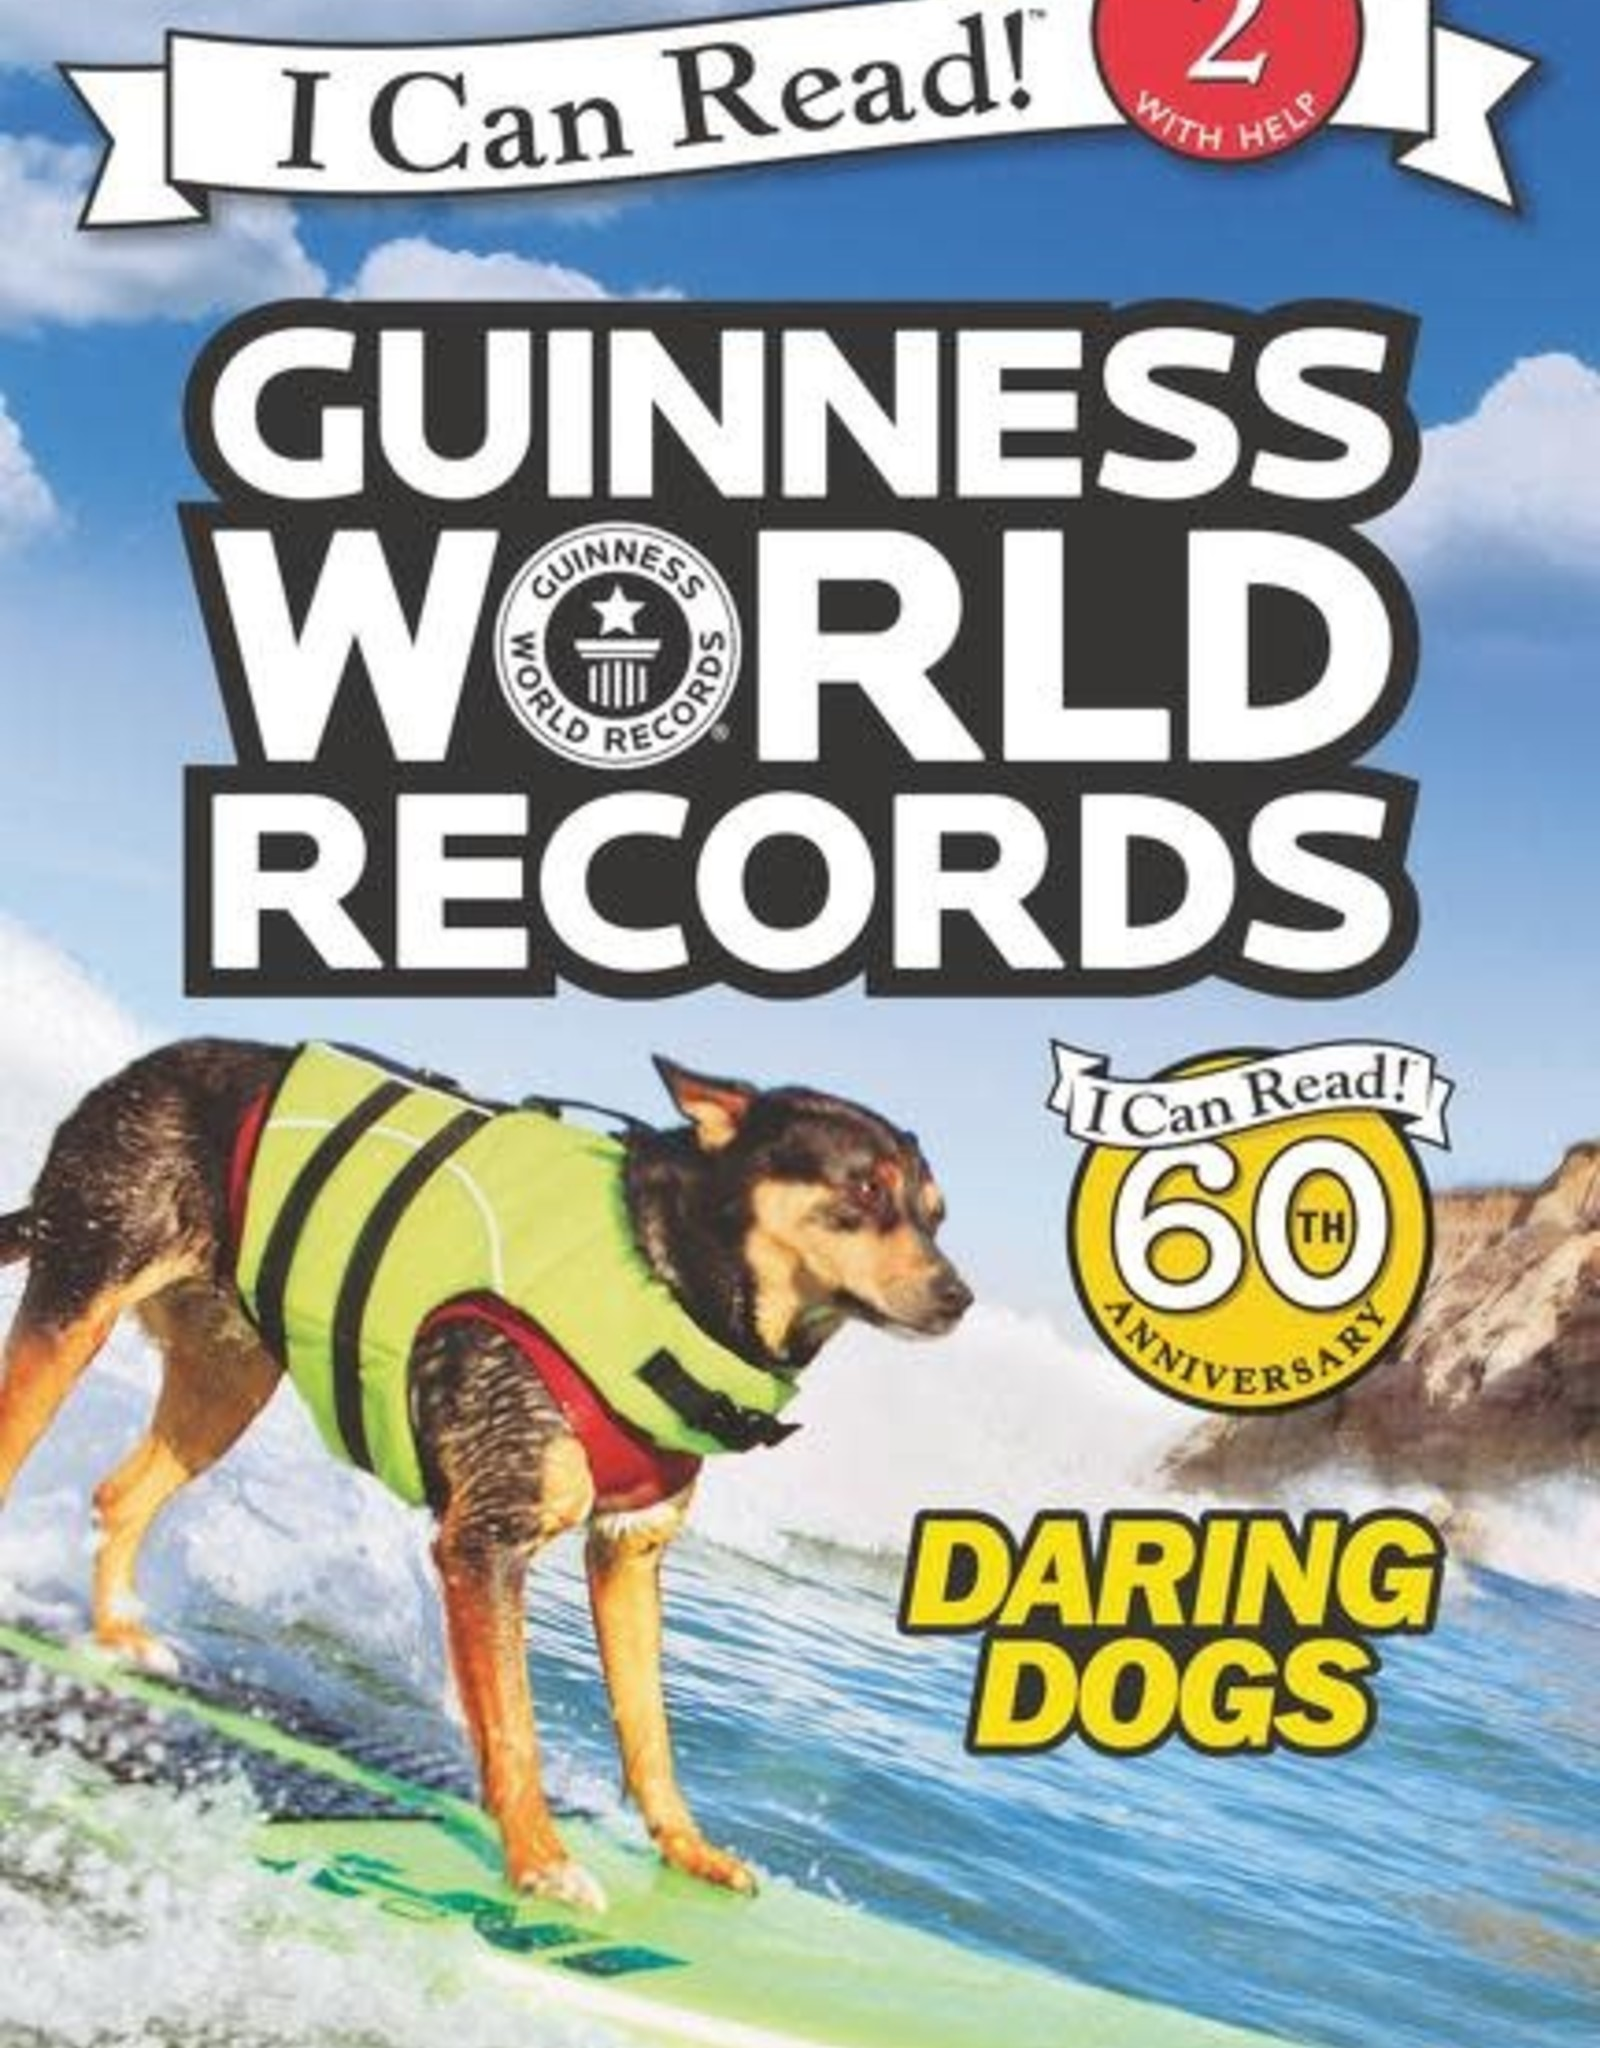 I Can Read! Guinness Daring Dogs